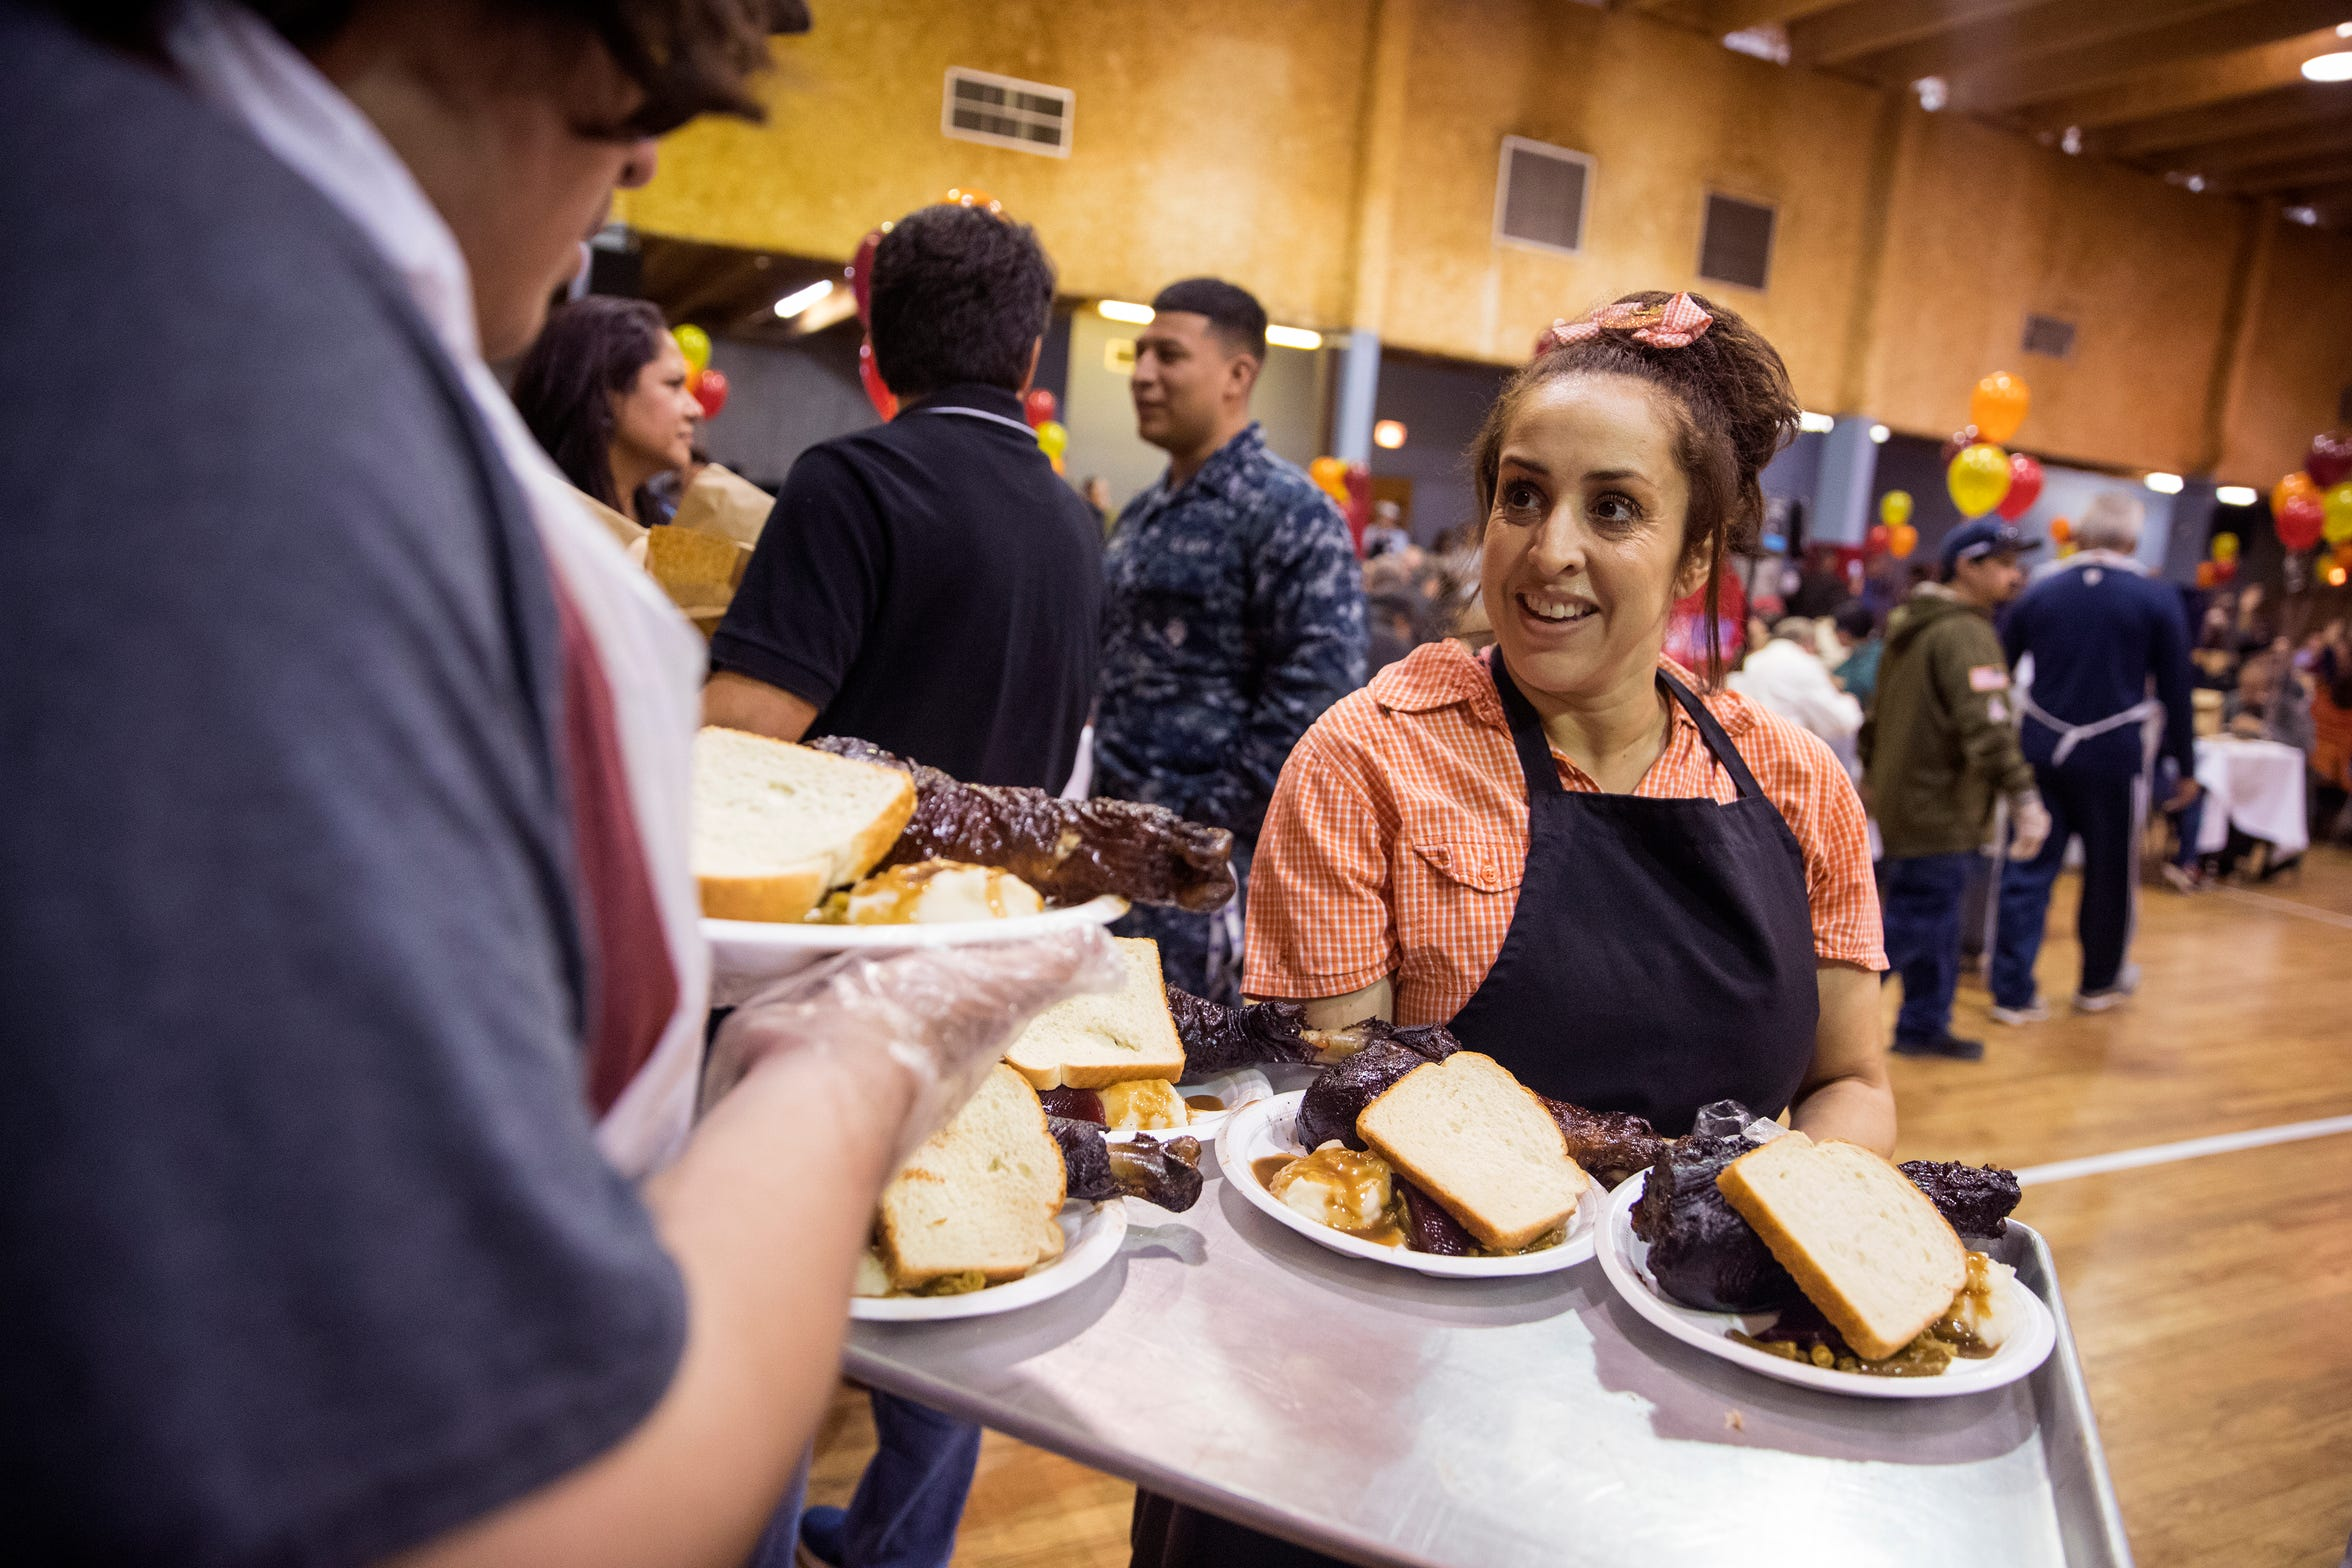 Volunteers Brayden Burrows (left) and Lynn Villarreal deliver meals during the 75th annual Joe Salem Dinner at Sokol Gym on Thanksgiving on Thursday, November 22, 2018.